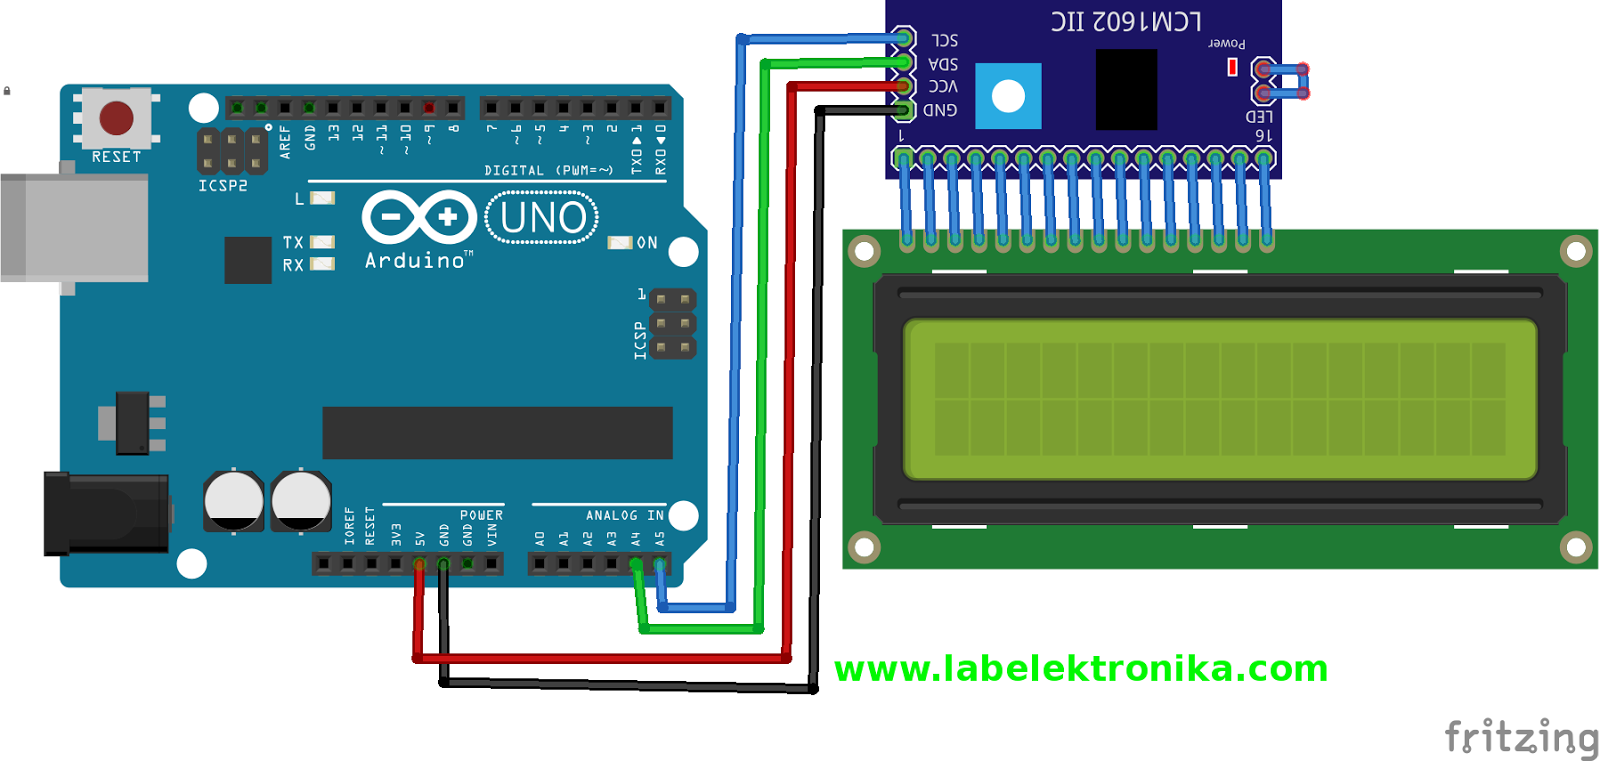 Lcd Display 16x2 Pin Diagram